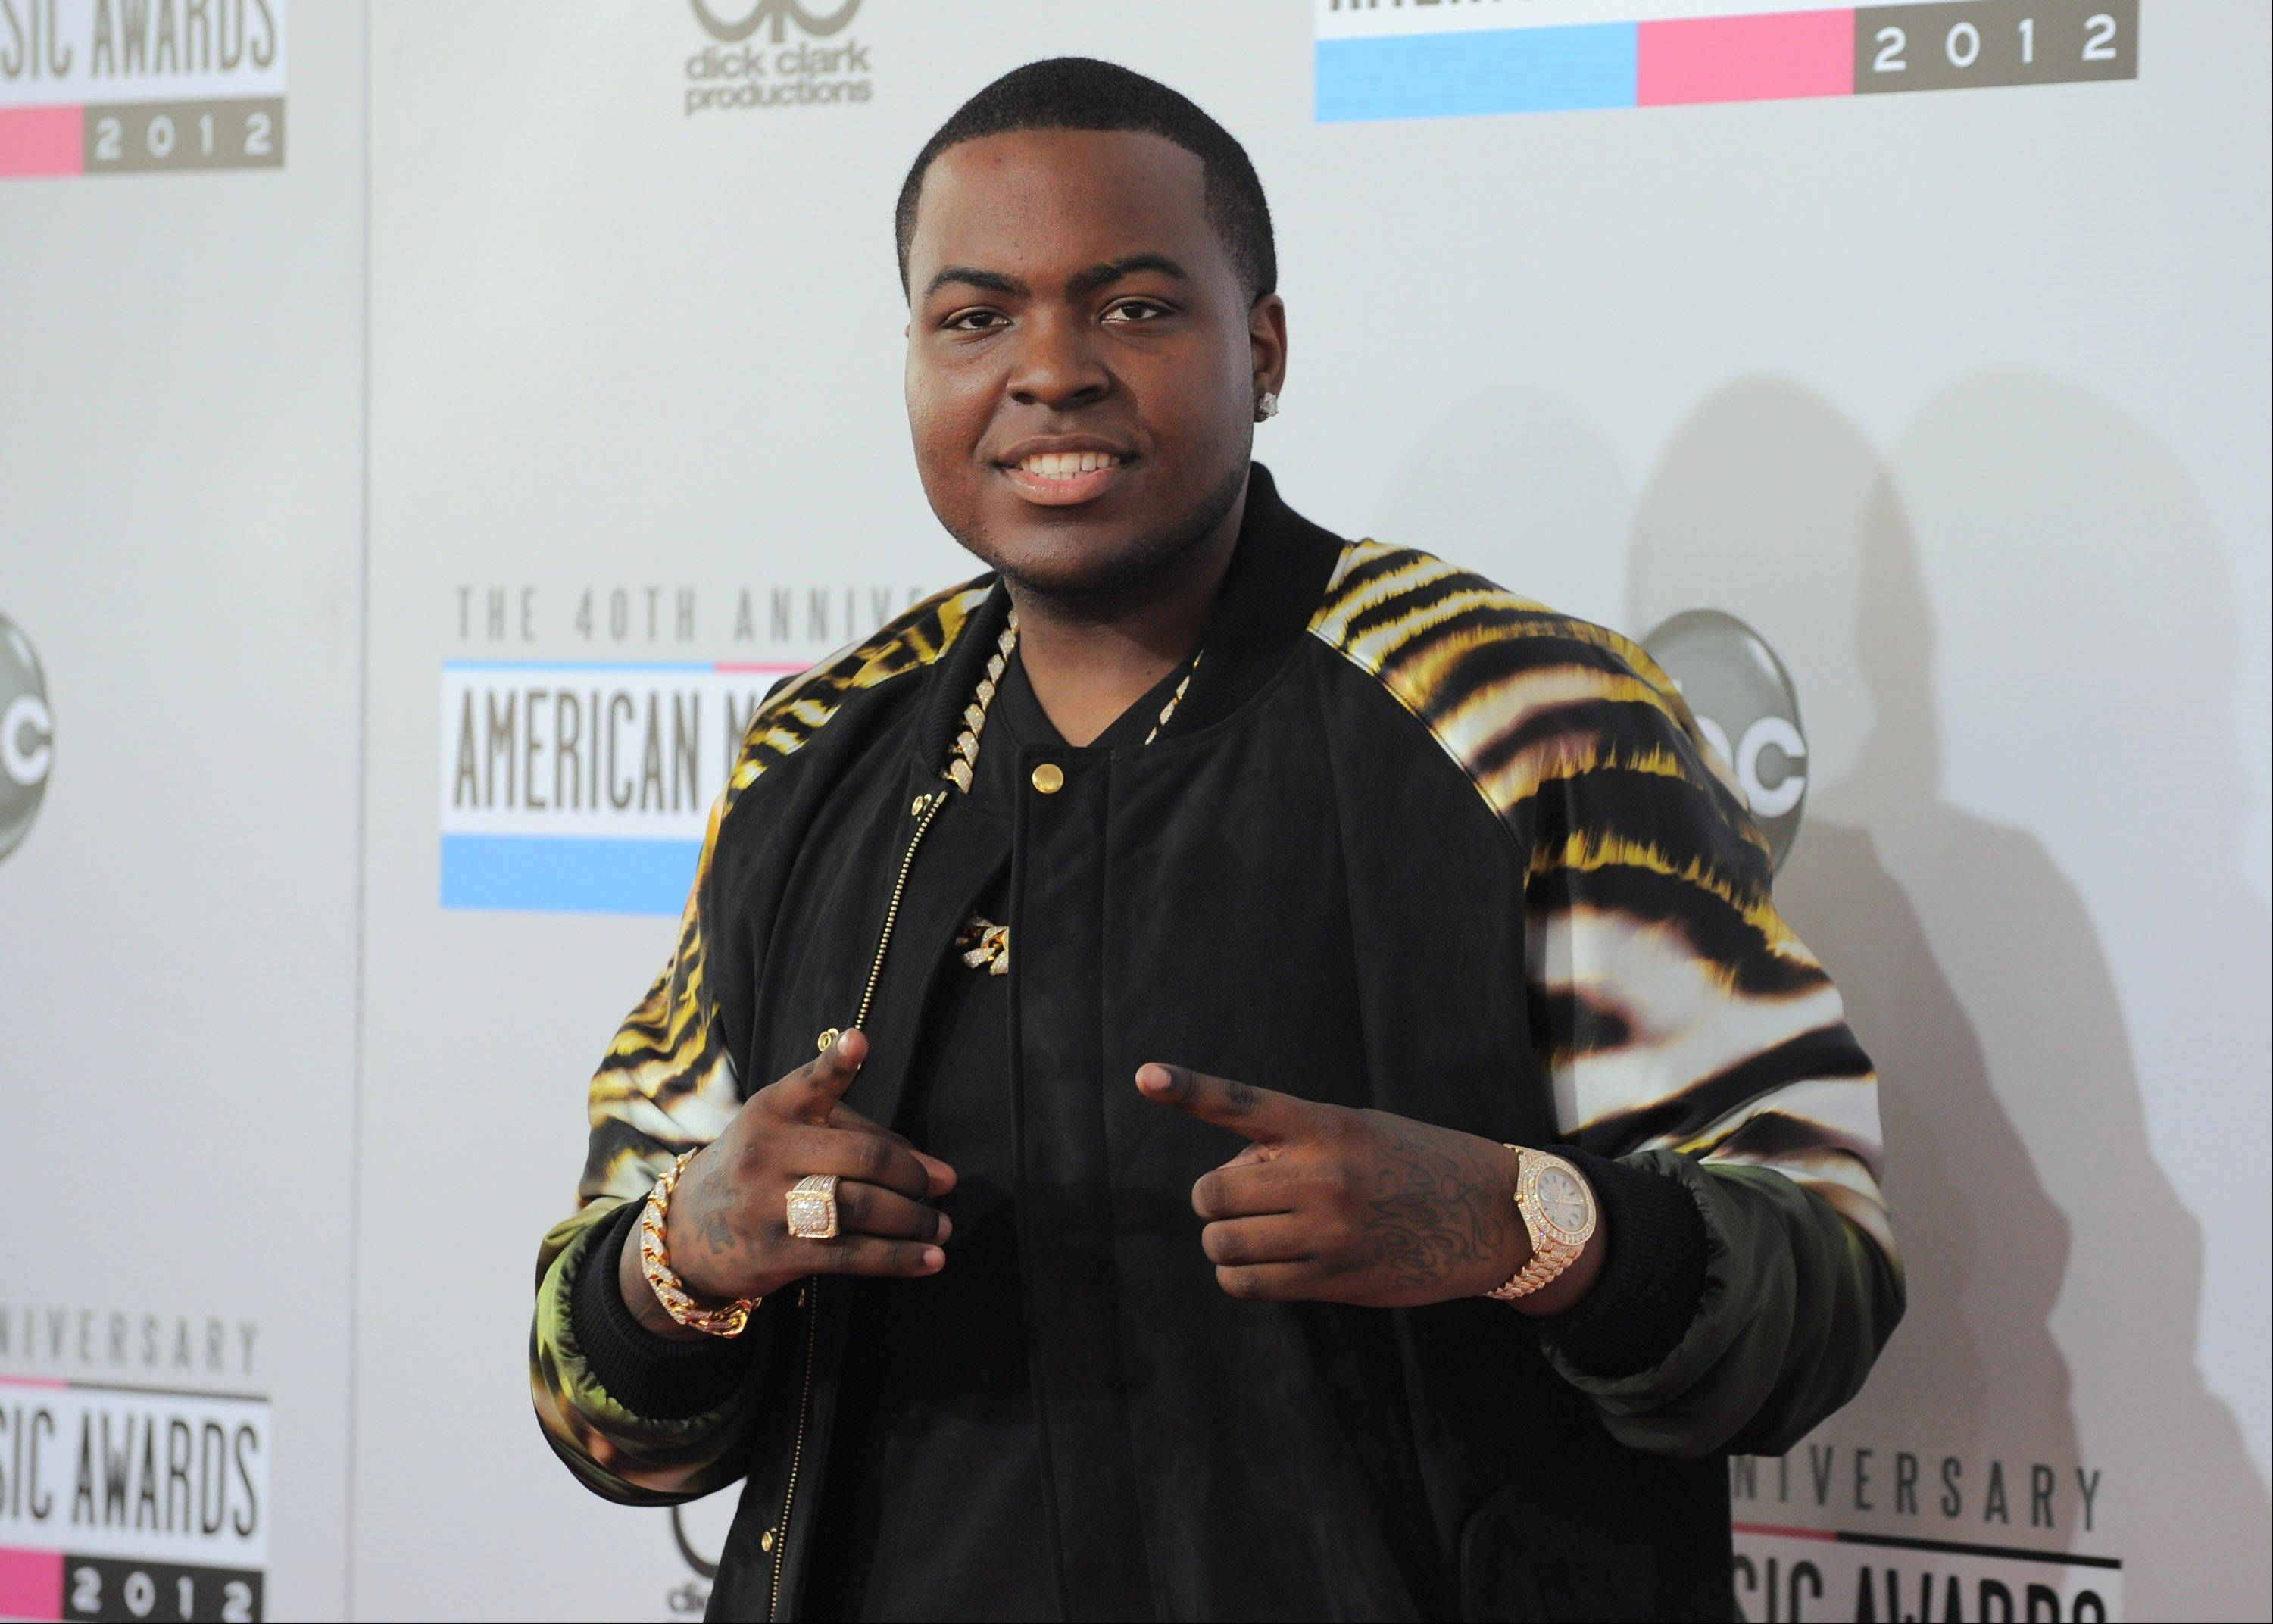 Sean Kingston arrives at the 40th Anniversary American Music Awards on Sunday Nov. 18, 2012, in Los Angeles.